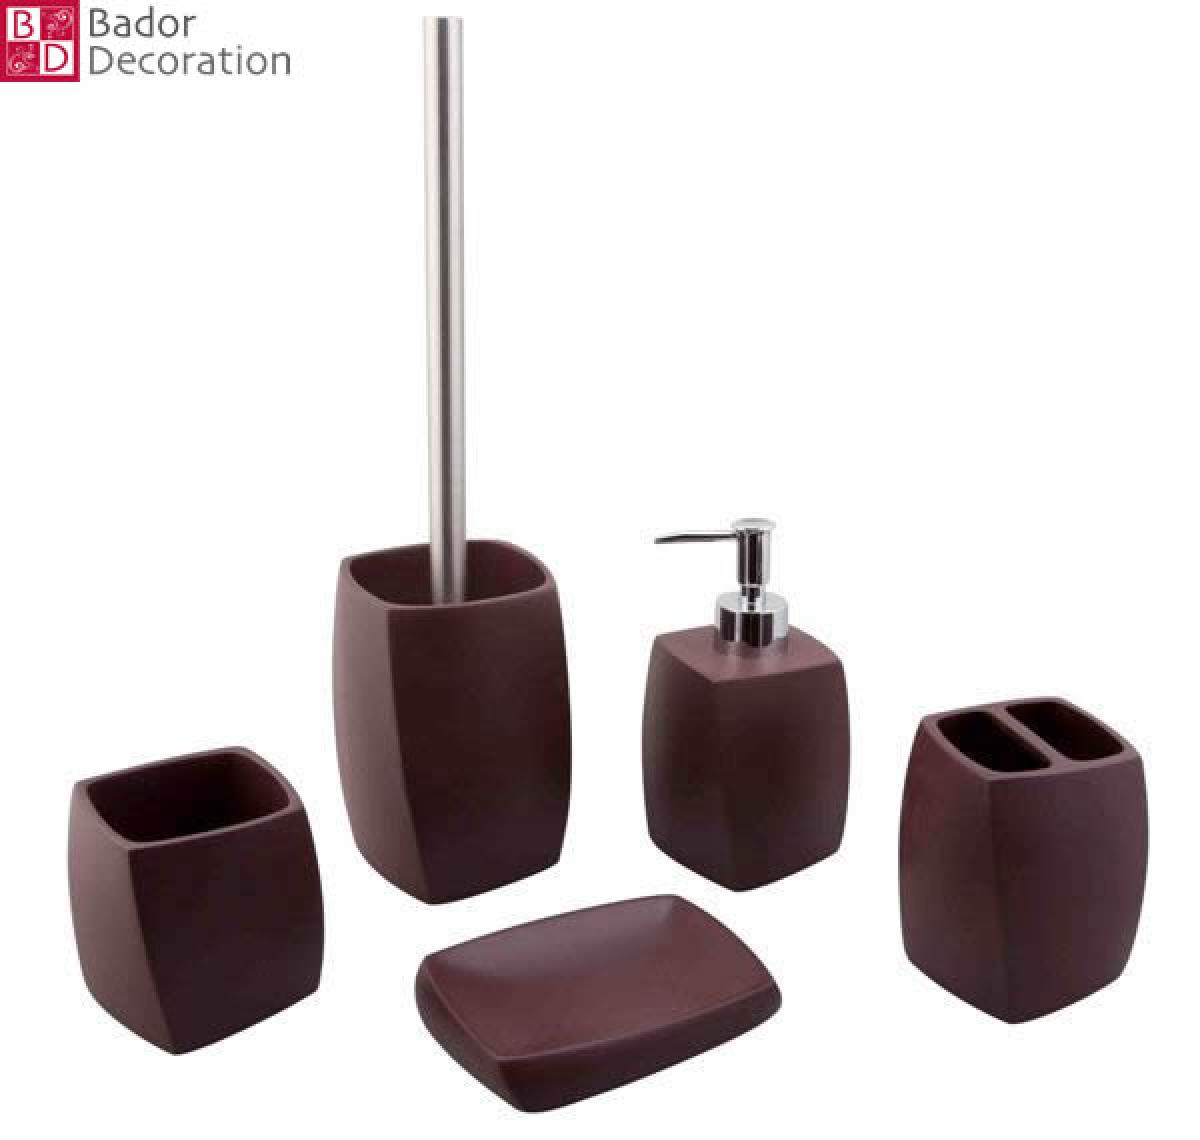 Bador Decoration 5 Pcs Bath Set Helios Brown